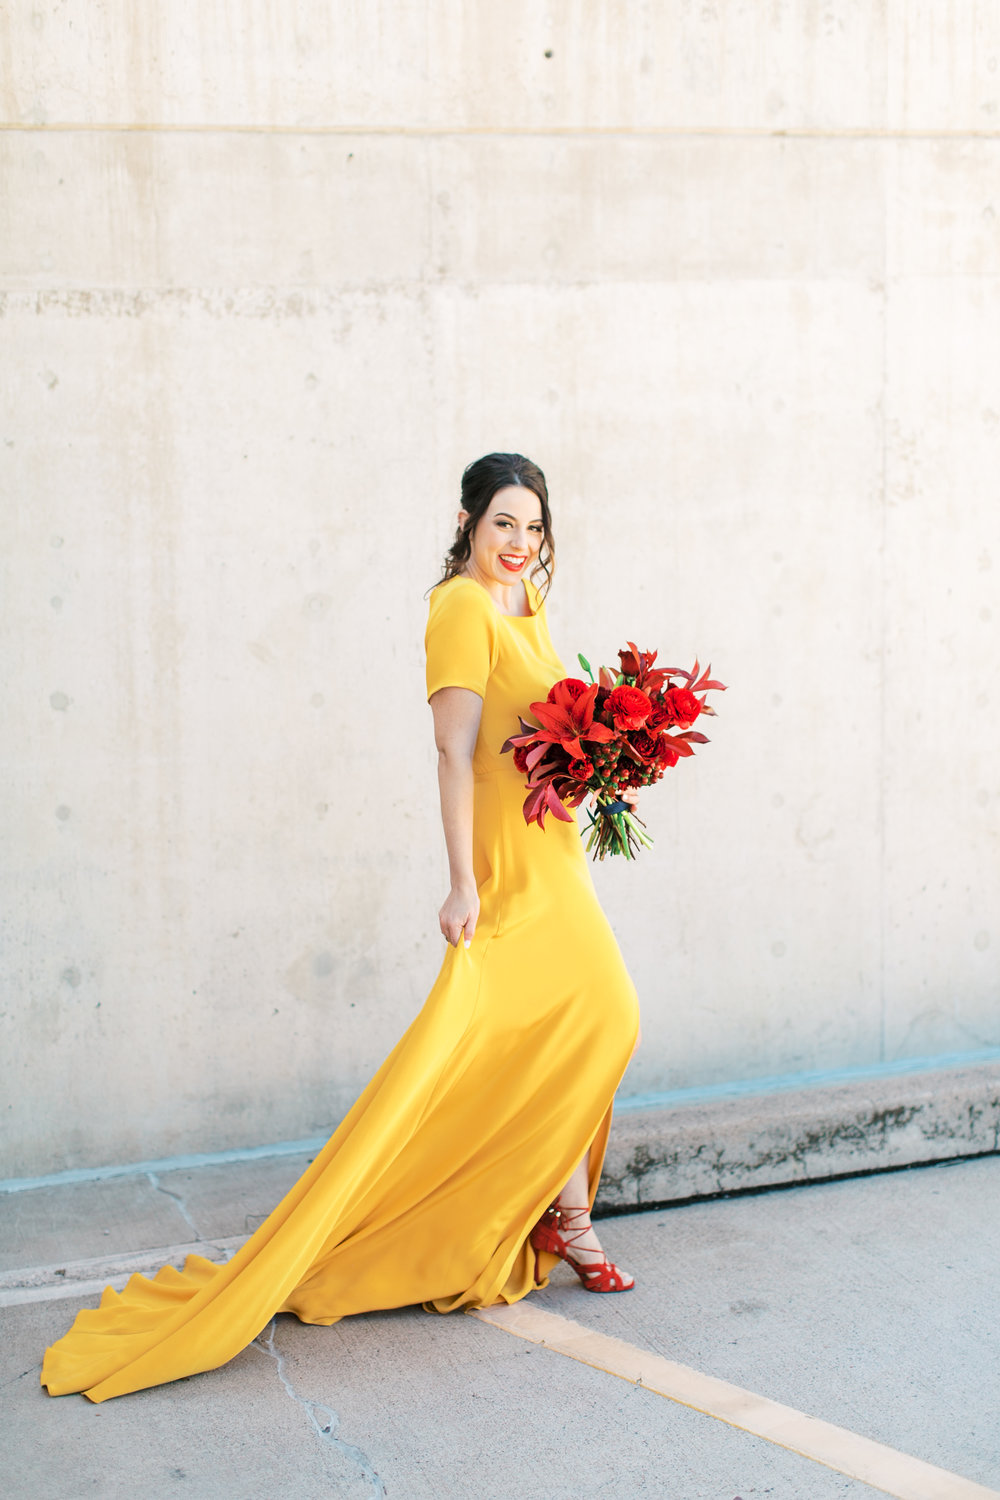 red and yellow wedding inspiration - red bouquet and yellow wedding dress